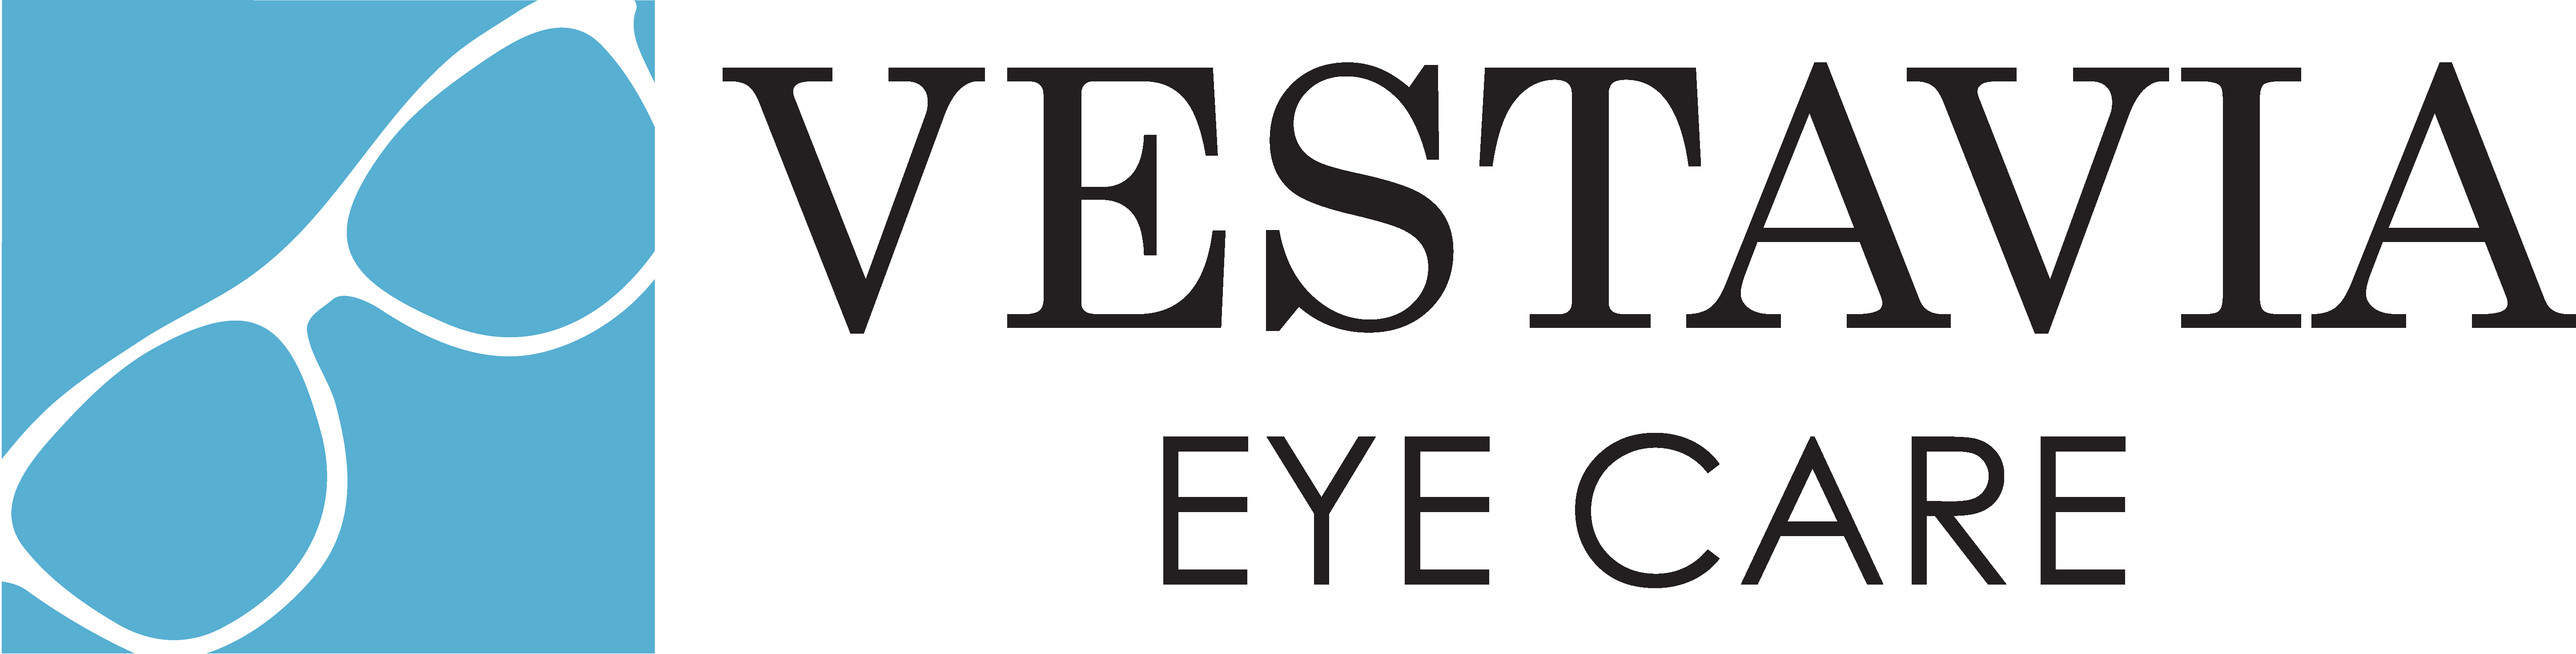 Vestavia Eye Care